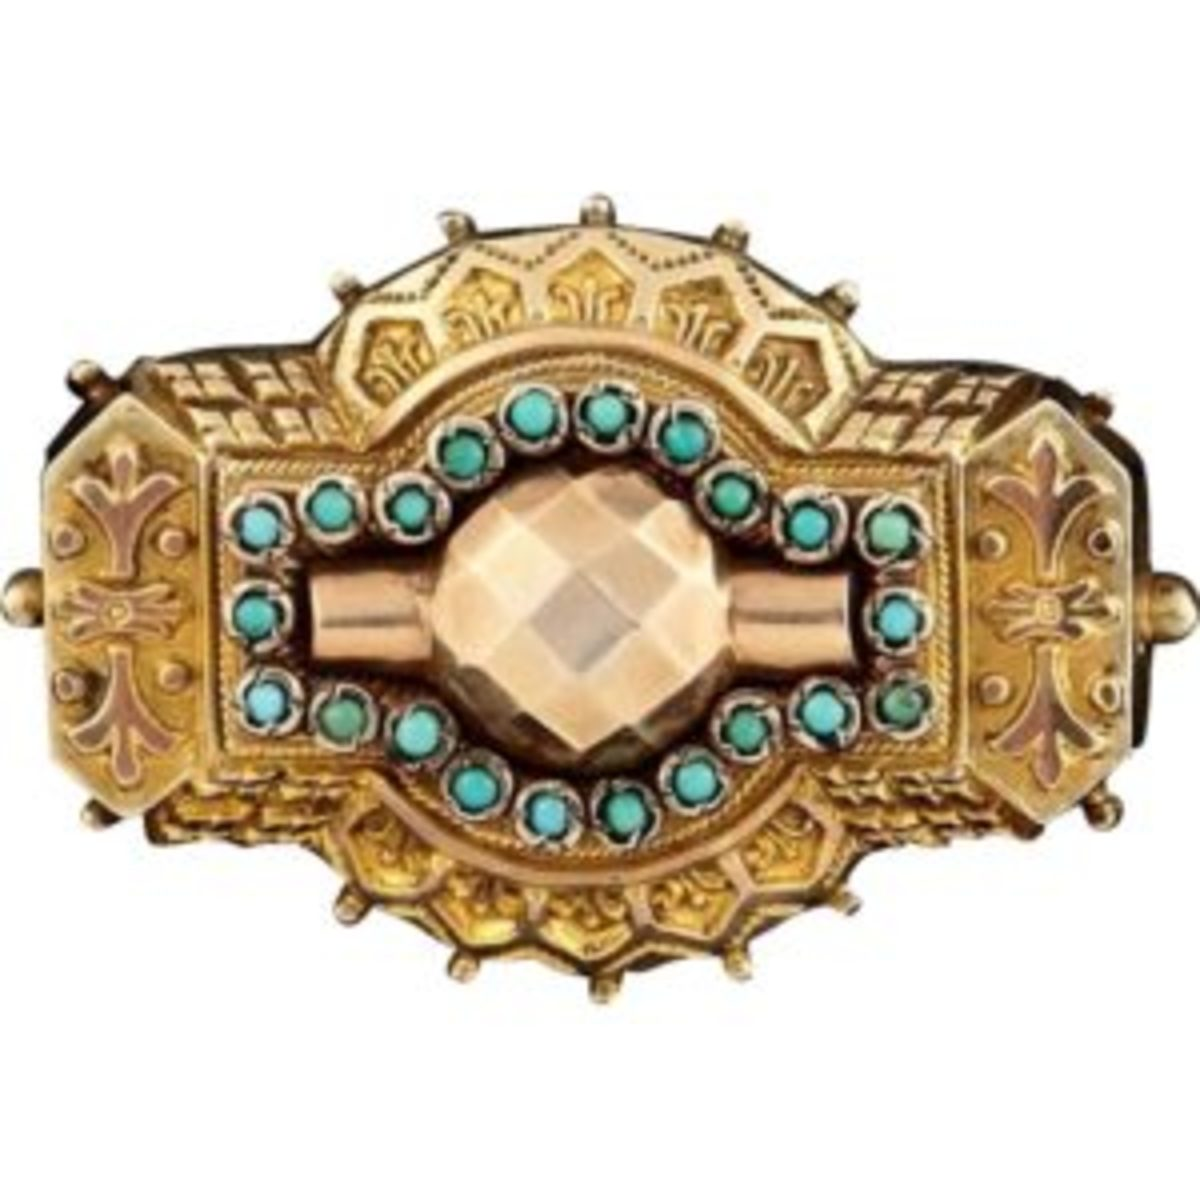 Etruscan Revival Victorian locket brooch. Courtesy of Ruby Lane.